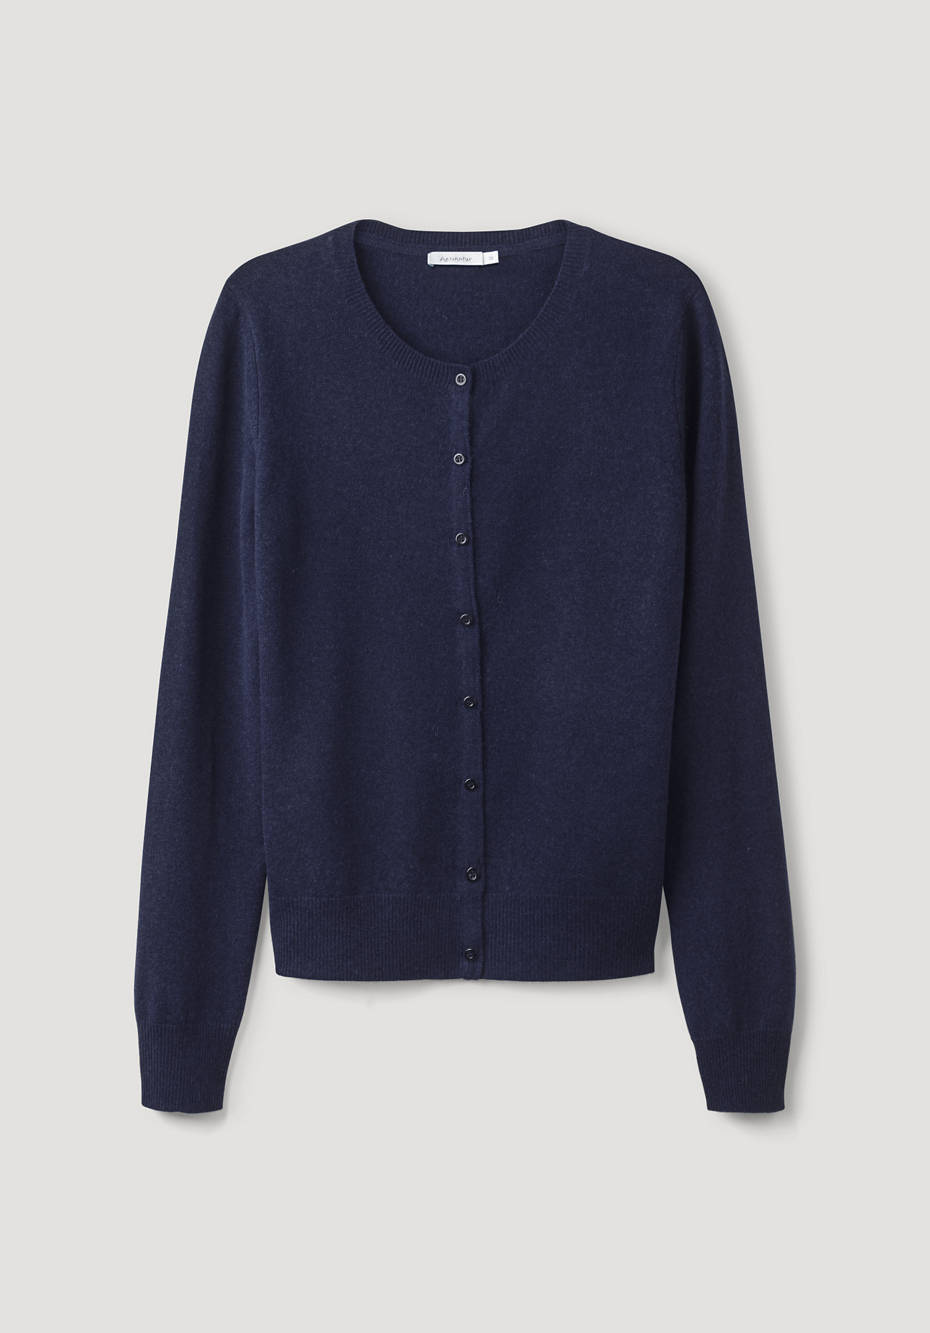 Cardigan made of virgin wool with cashmere